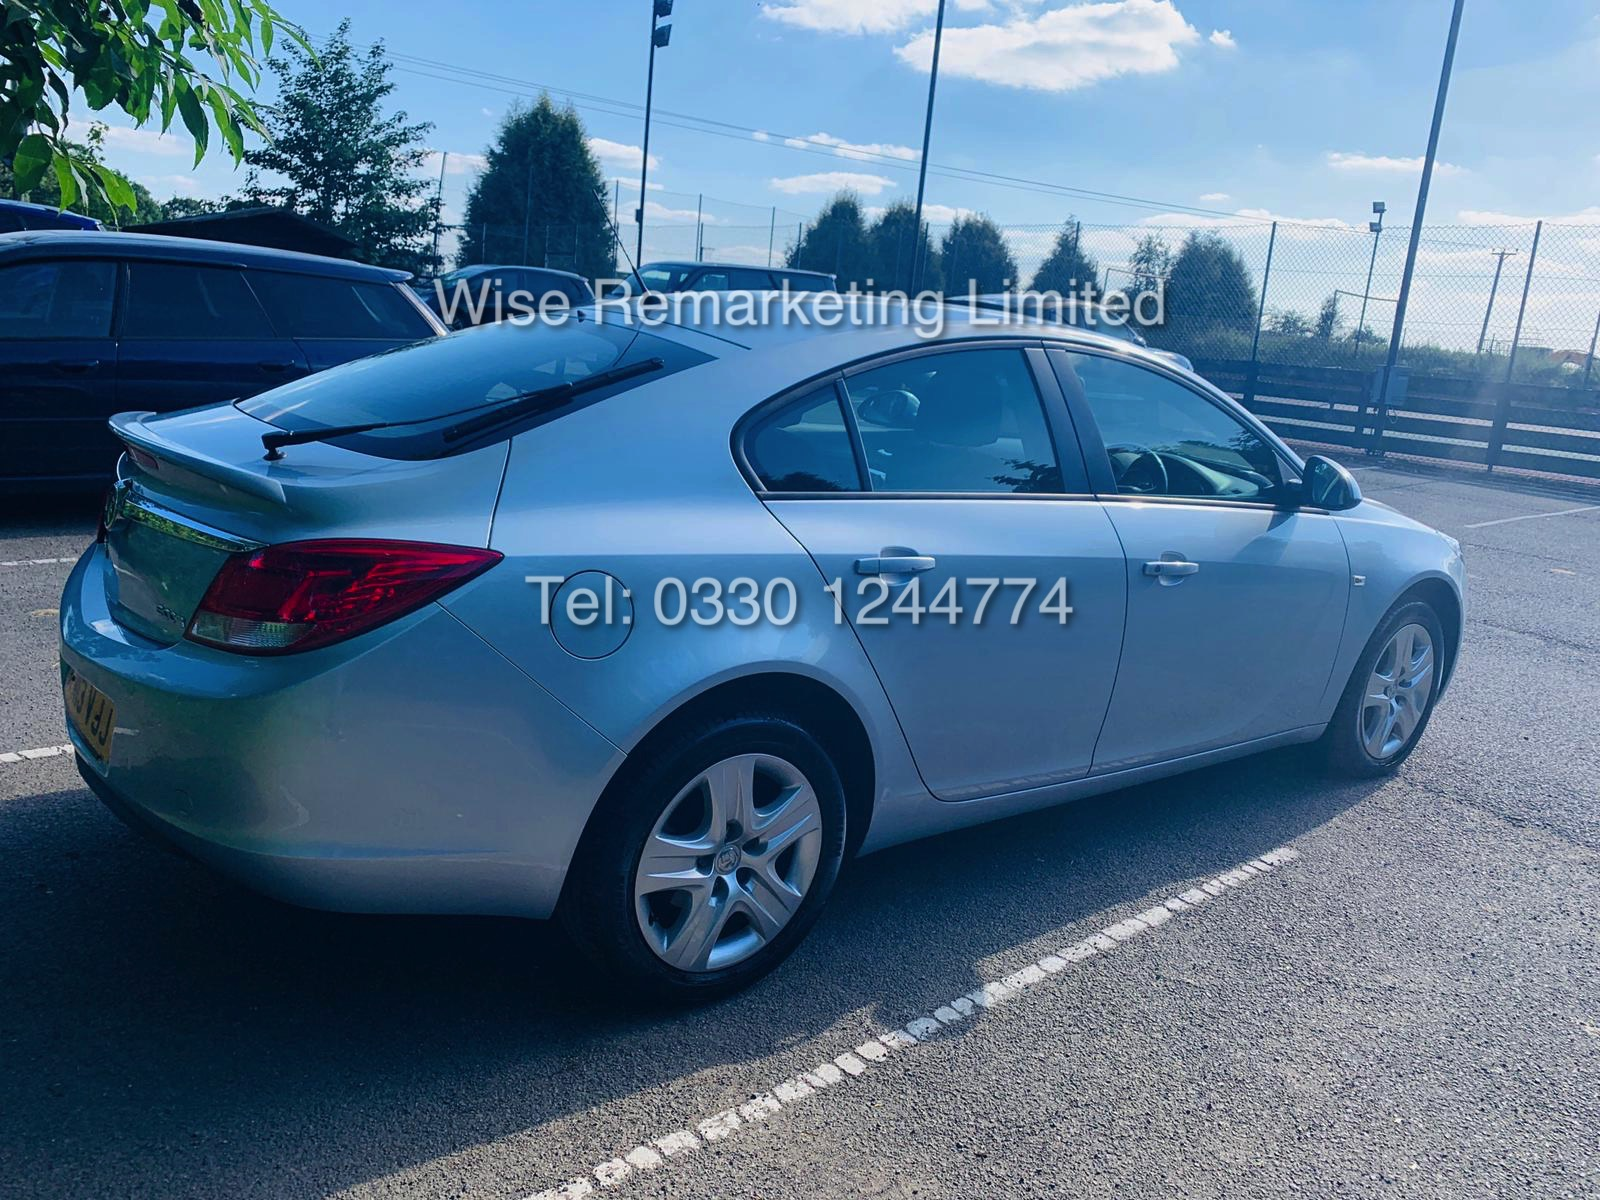 VAUXHALL INSIGNIA 2.0 CDTI ECOFLEX ES 2013 *FSH* 1 OWNER FROM NEW - Image 6 of 30